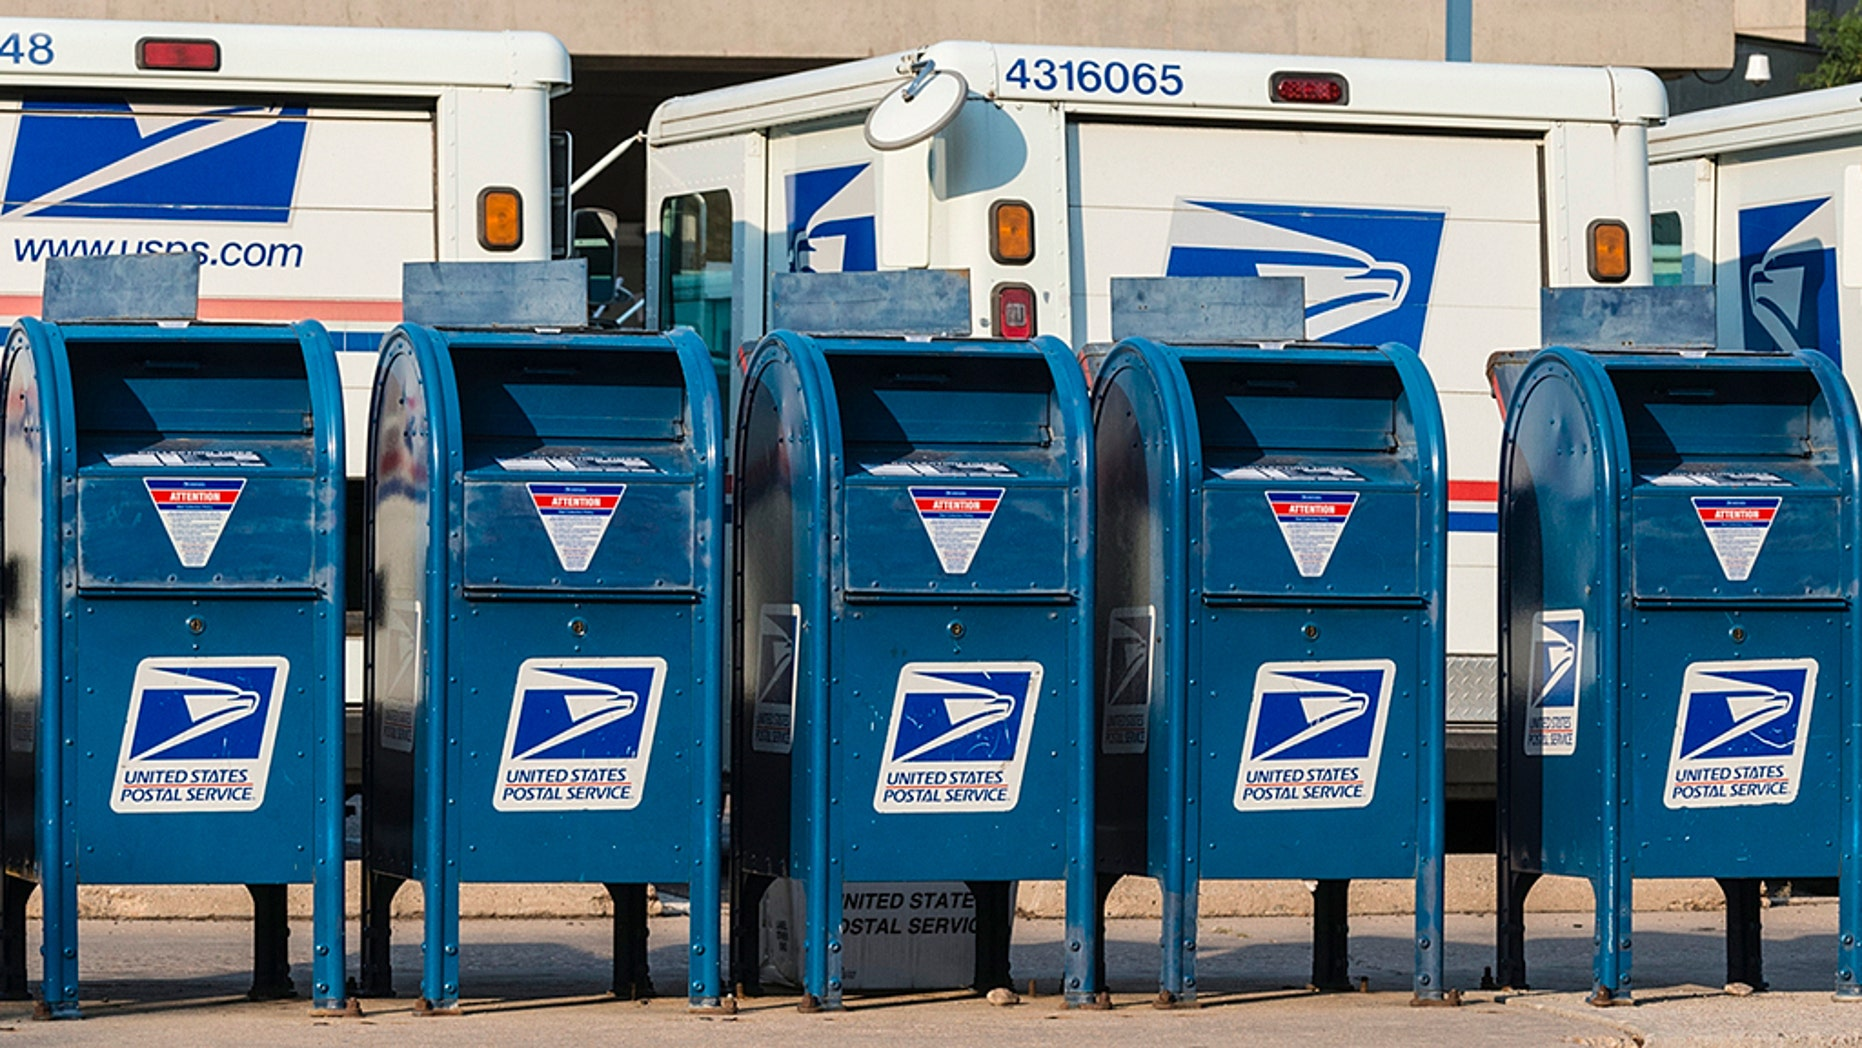 A U.S. postal worker admitted she stole greeting cards for the cash and checks.